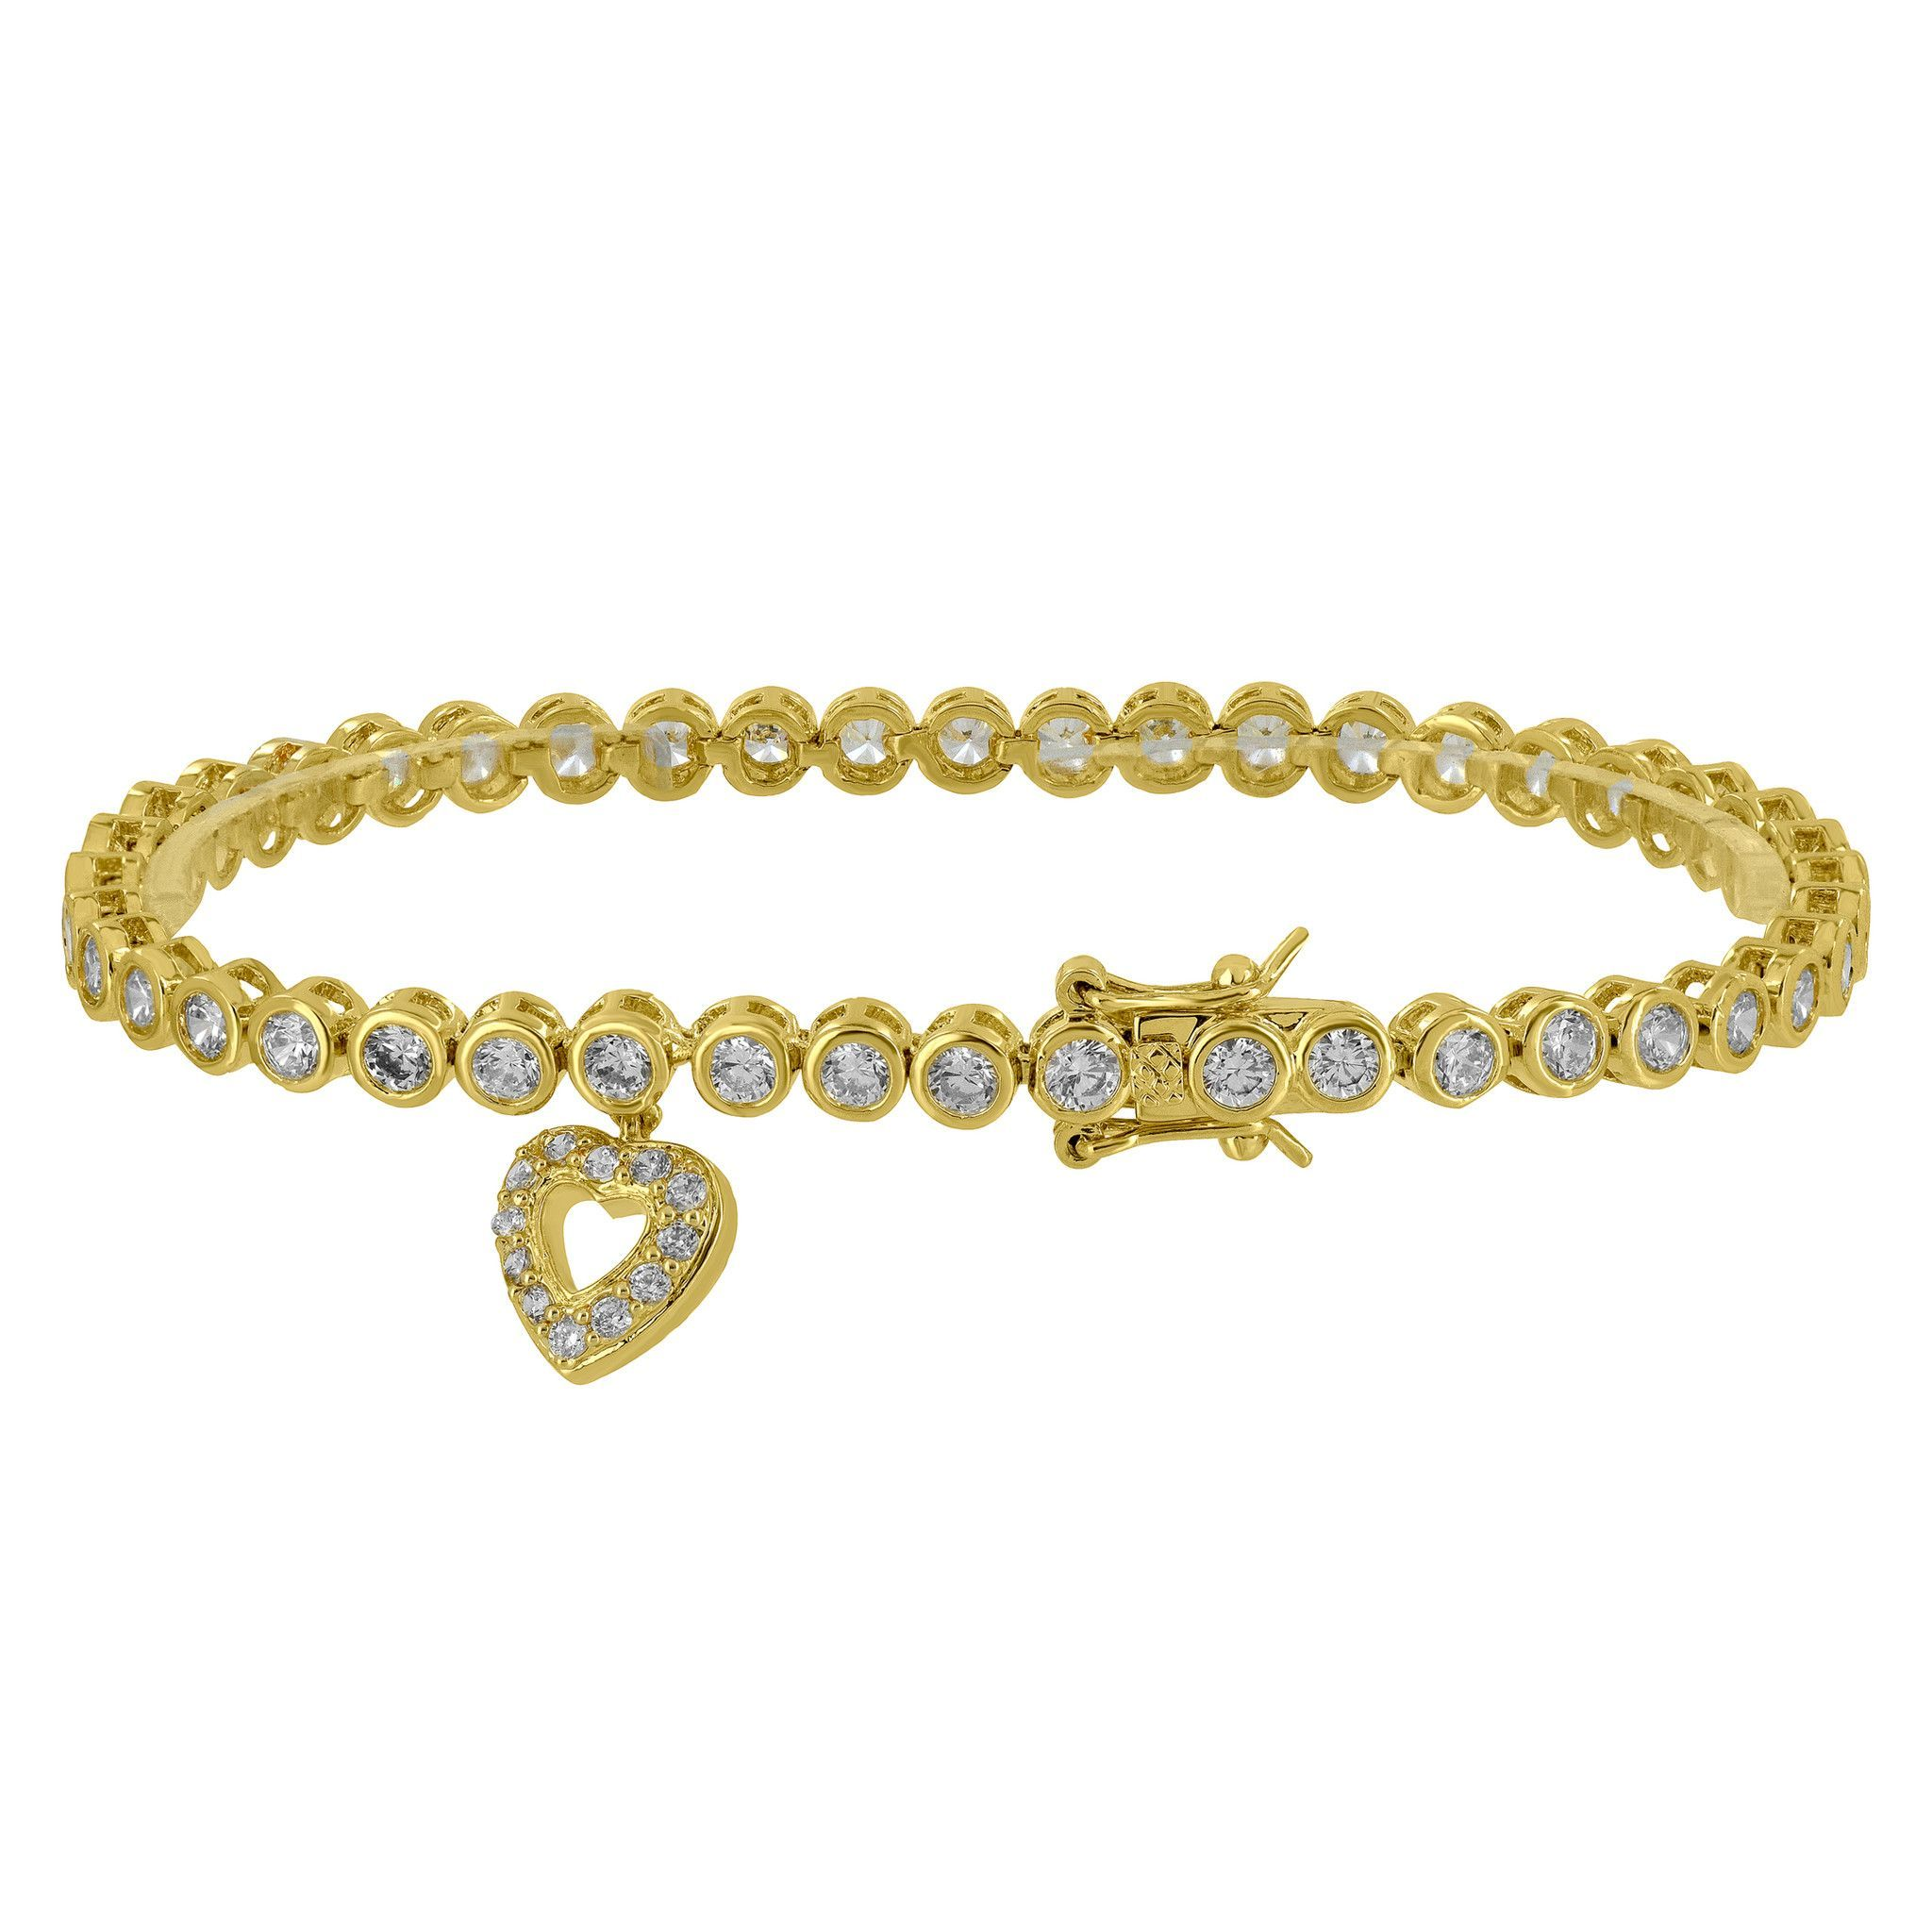 bangles bracelet gold bangle round with links charm yellow padlock heart bracelets fancy